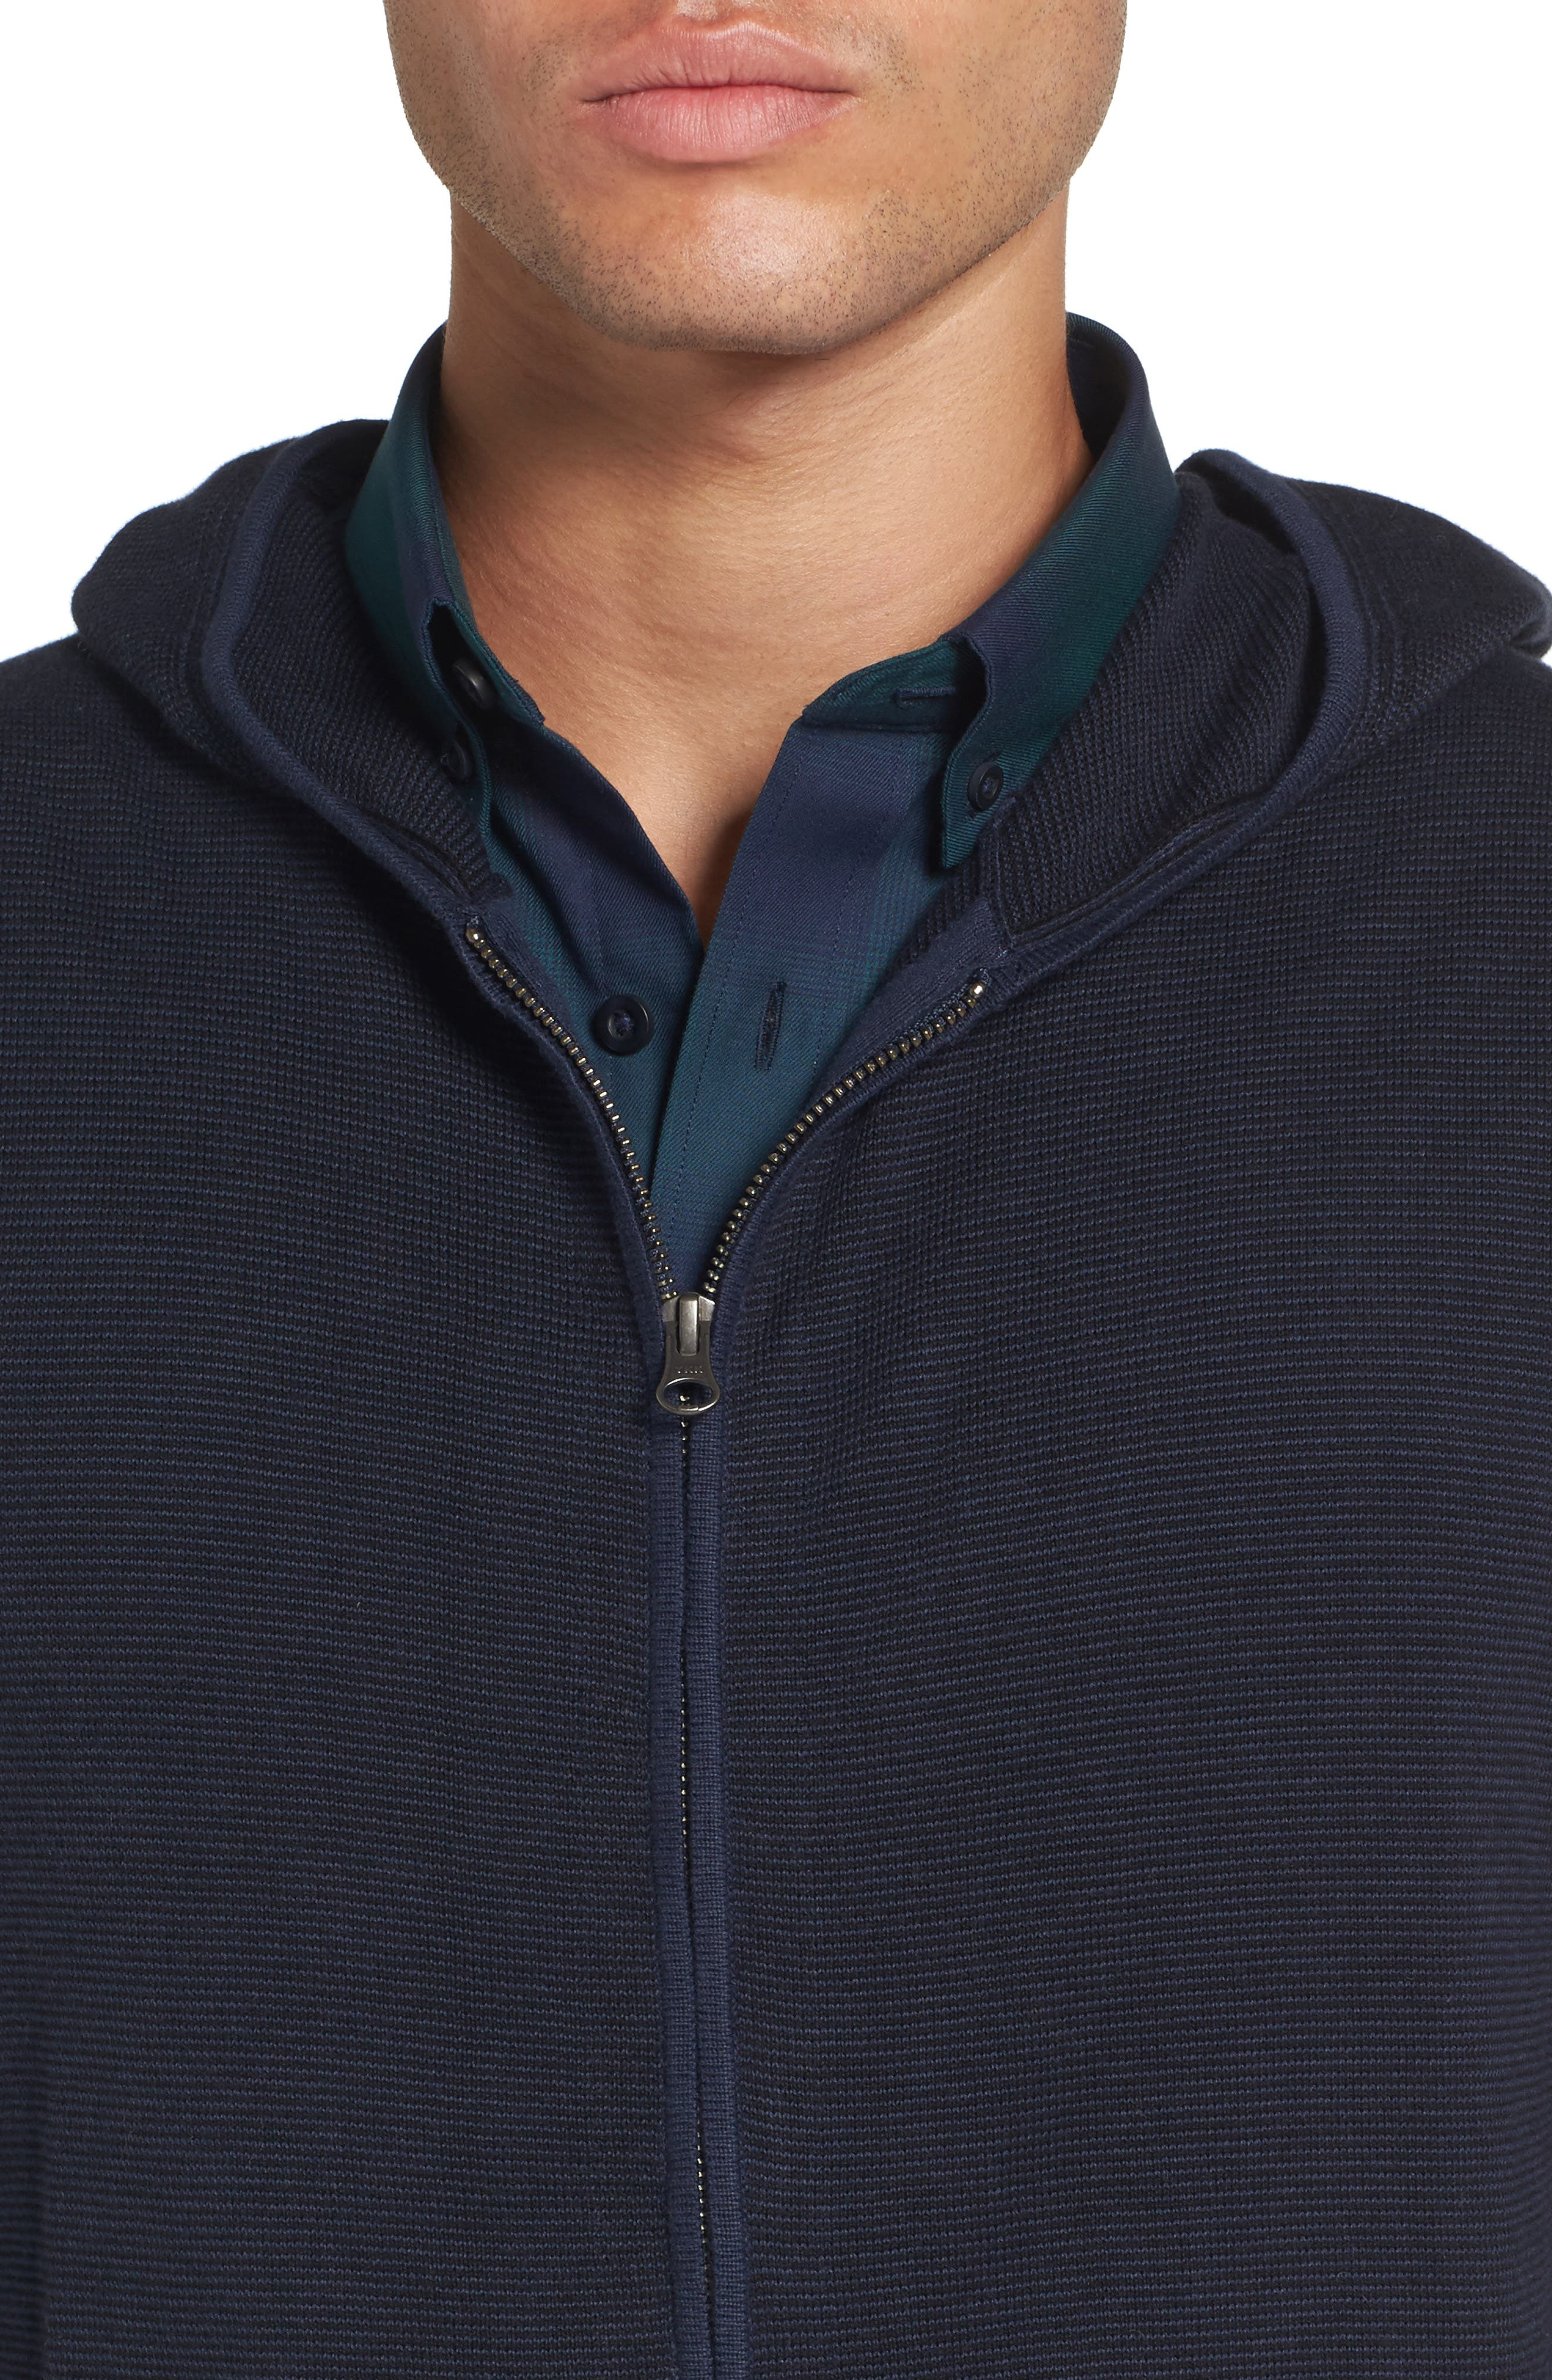 Zip Front Hooded Sweater,                             Alternate thumbnail 12, color,